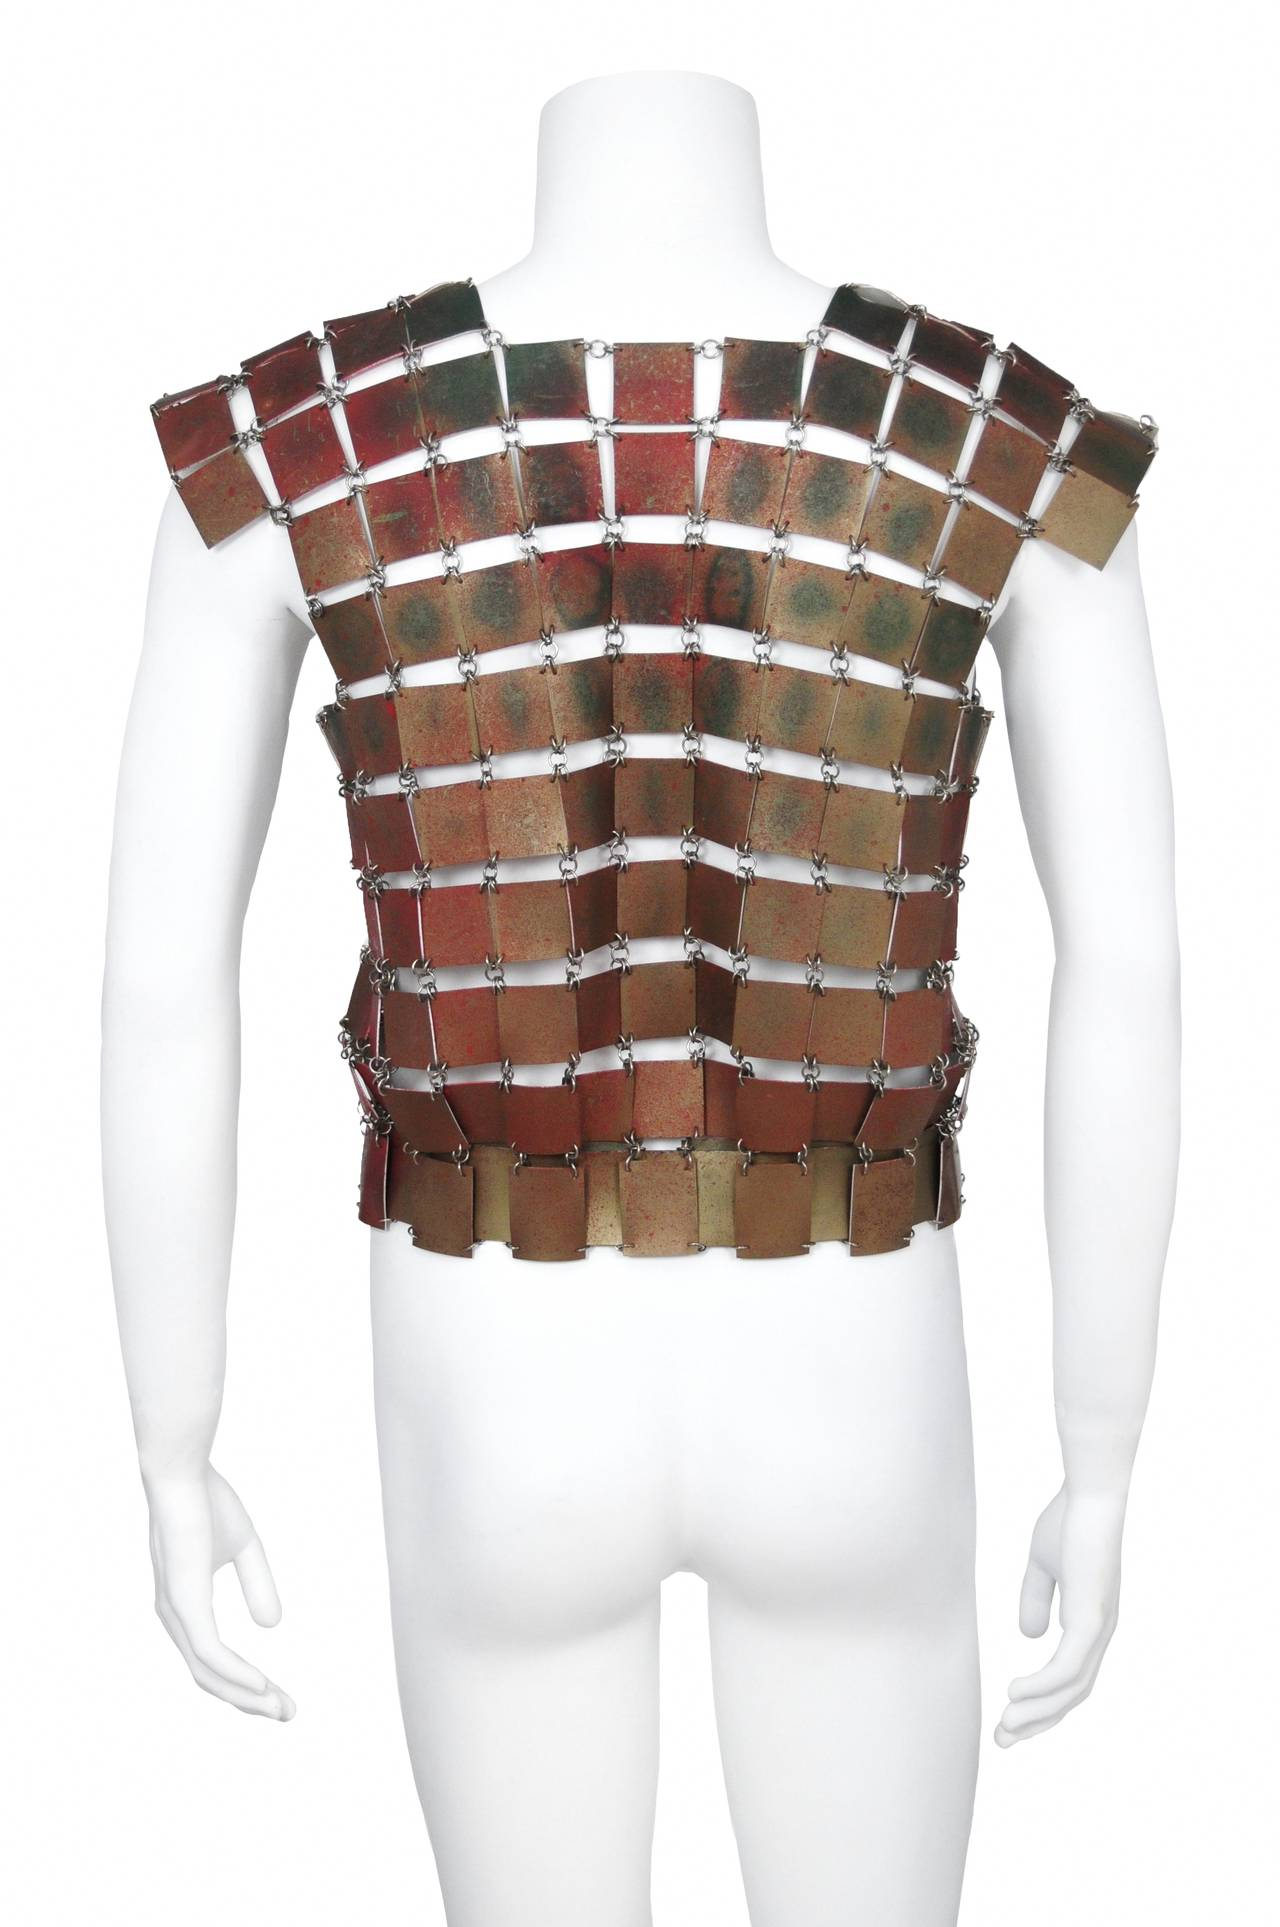 Paco Rabanne early men's short sleeve top featuring metal ring linked bronze leather square cut outs and a built in matching leather waist belt.